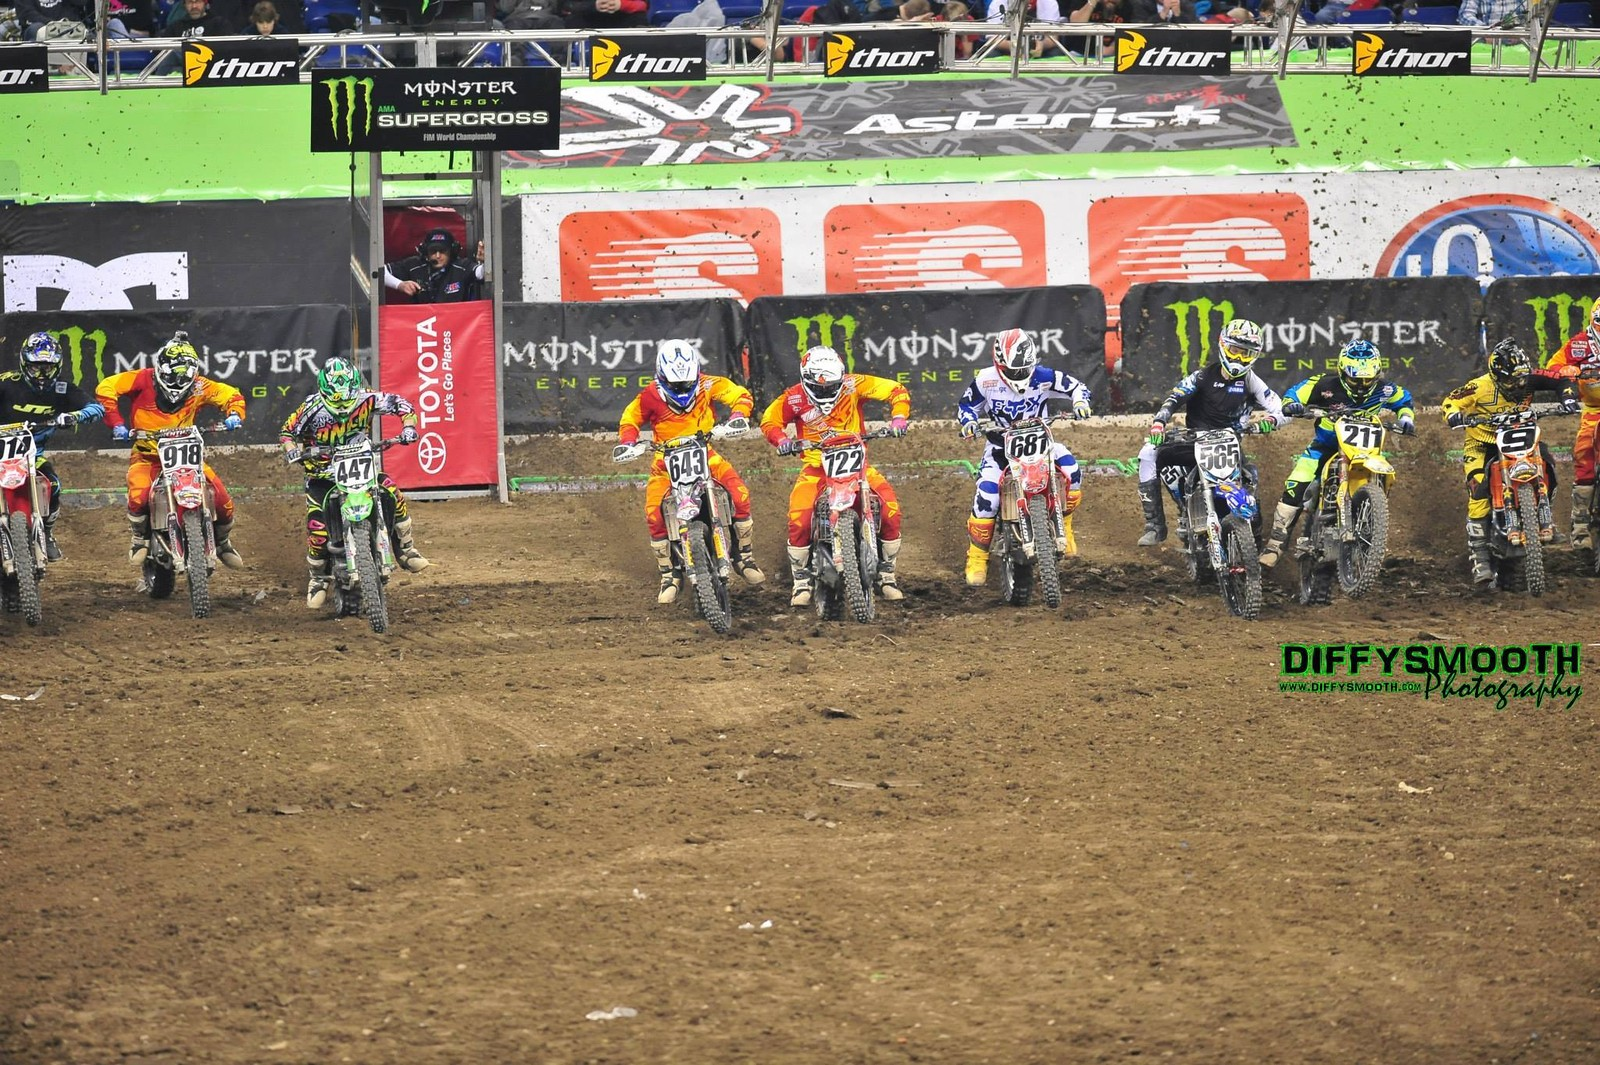 Tedesco & Tapia - DiffySmooth - Motocross Pictures - Vital MX